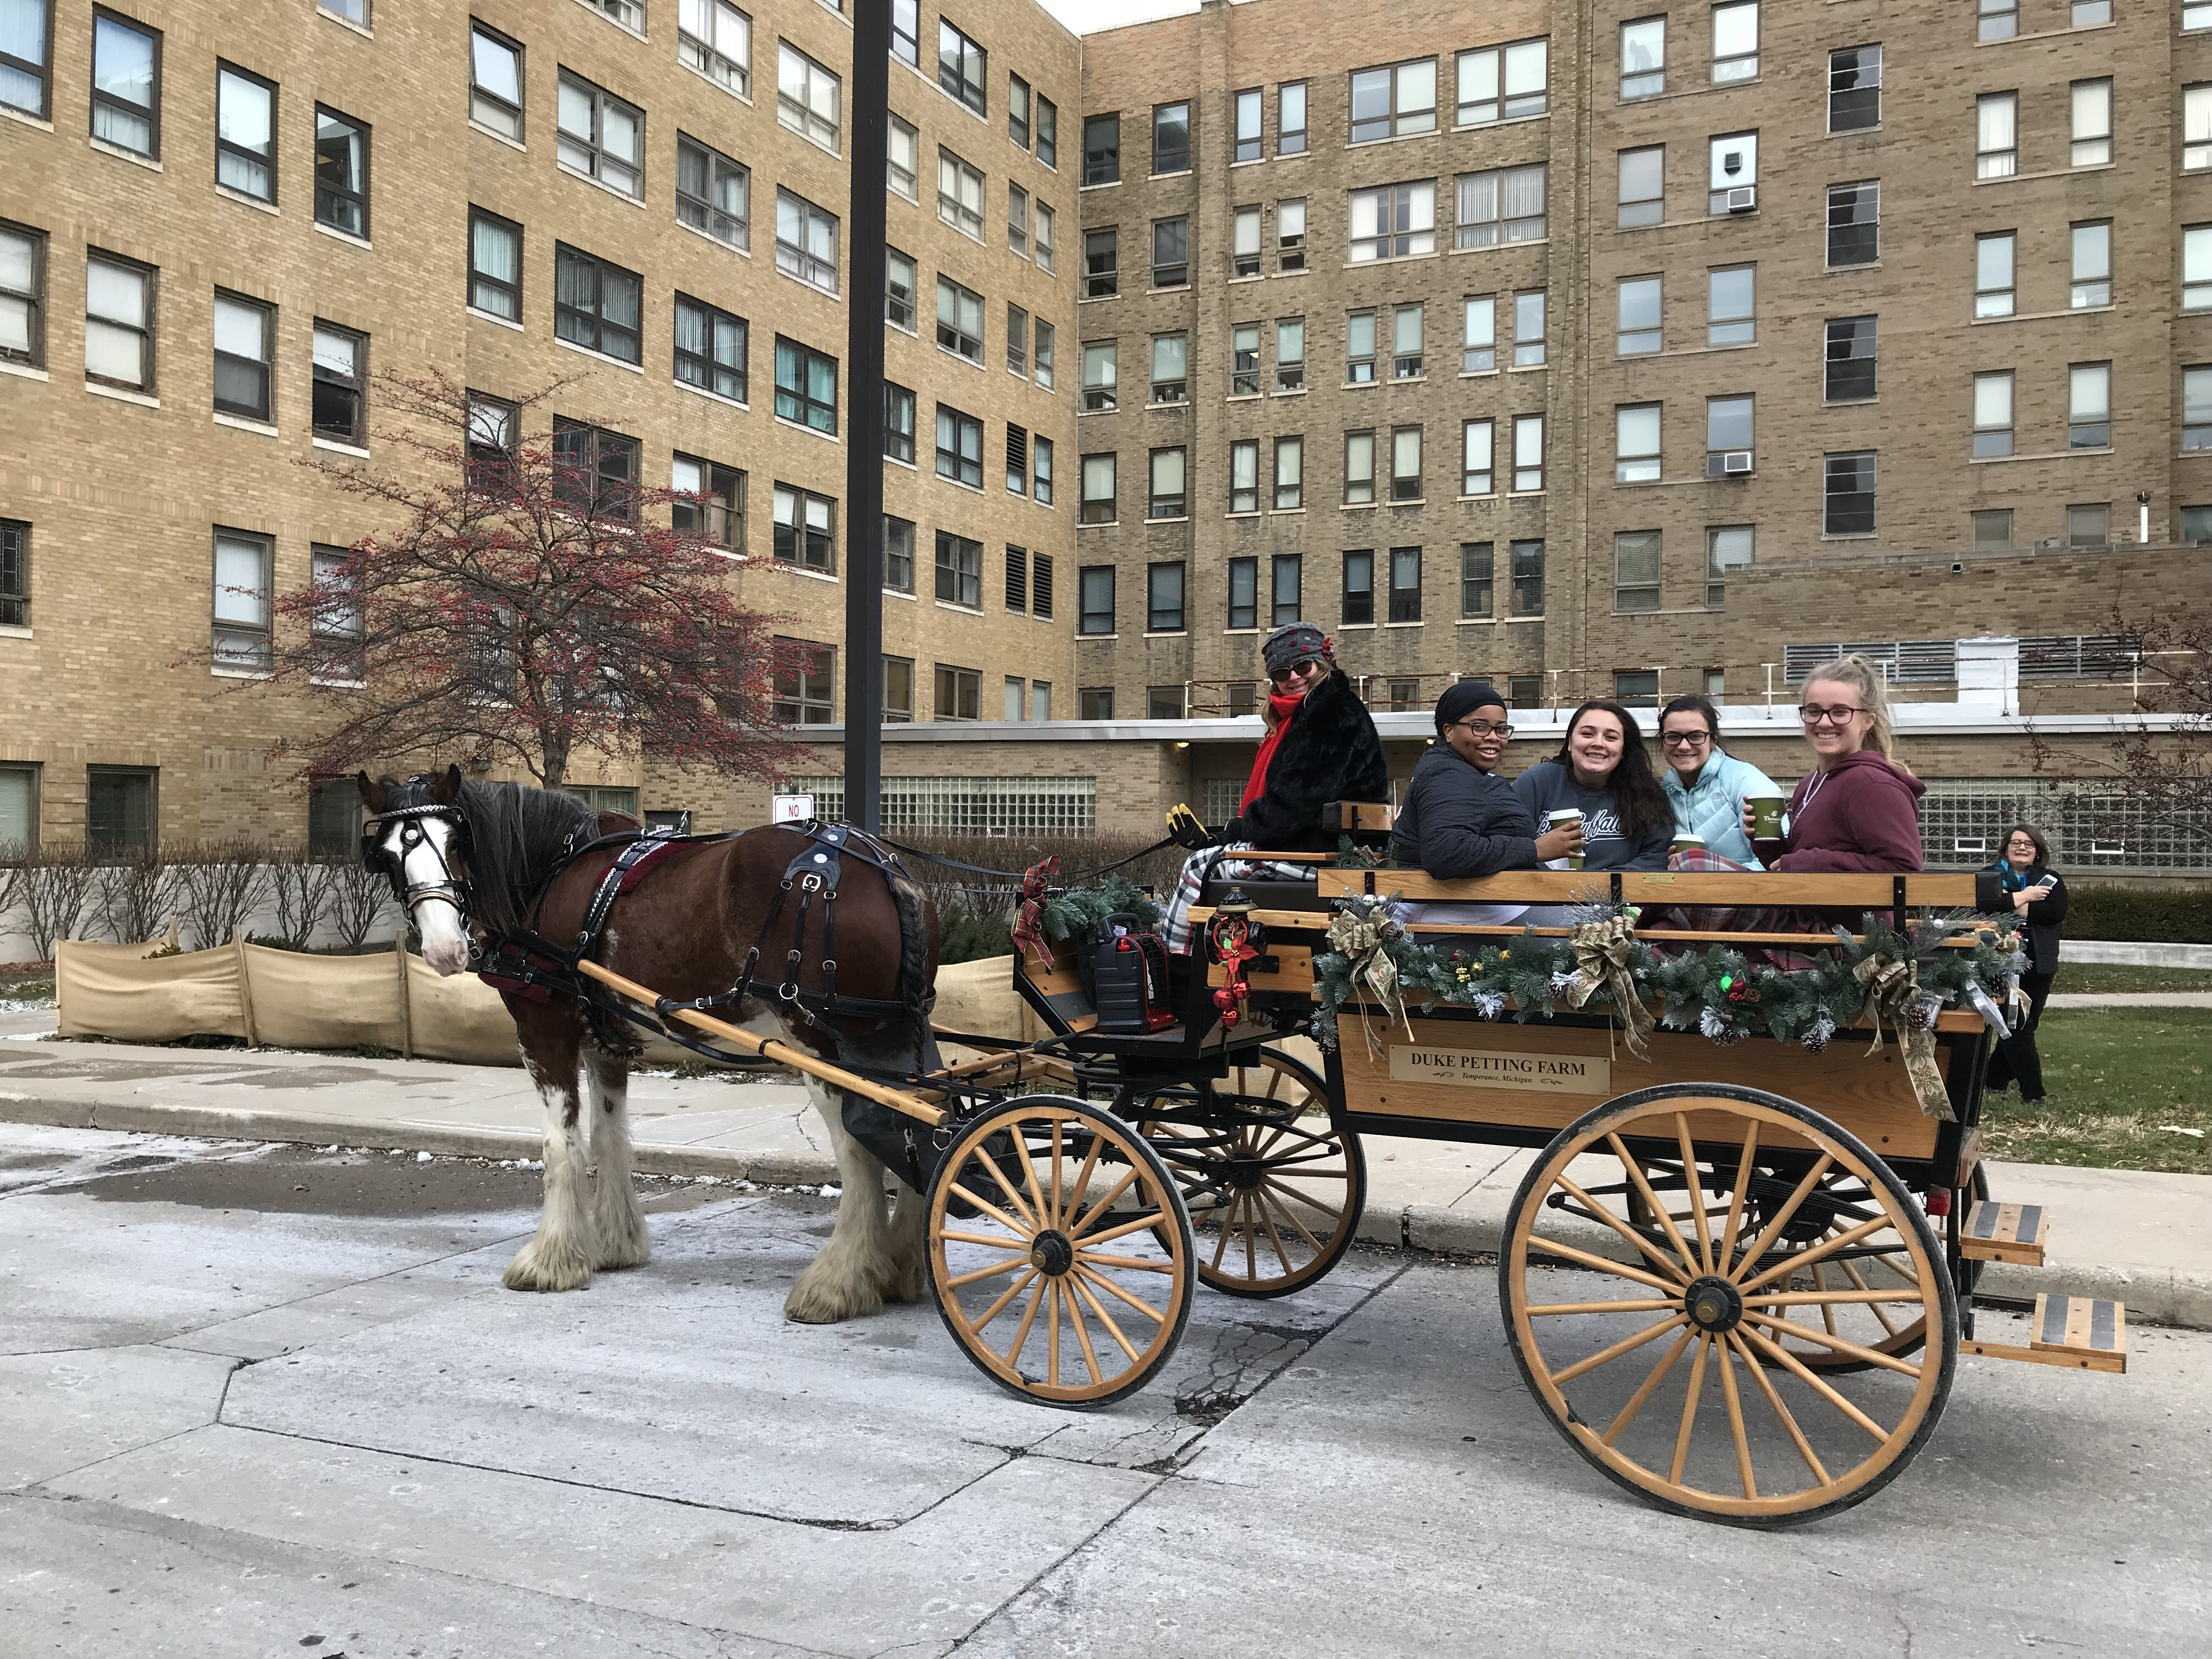 Image of Students on Horse Drawn Carriage in front of Mercy College building